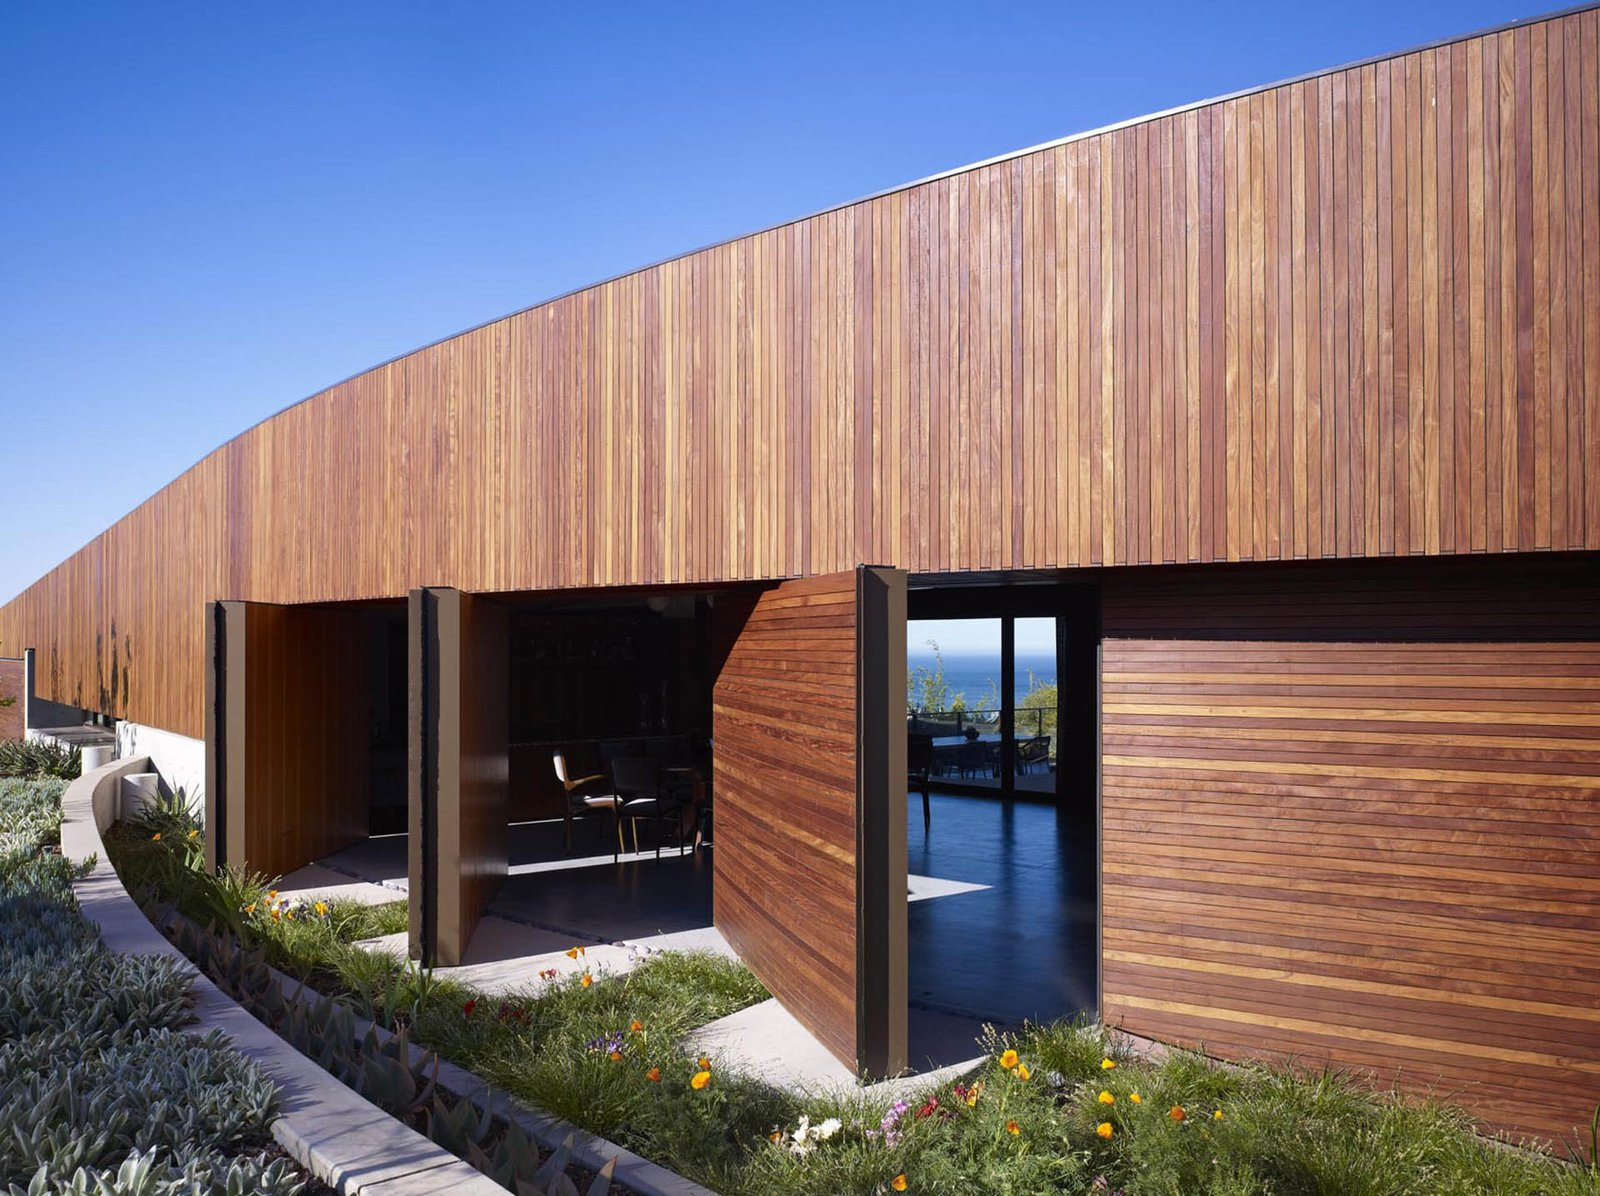 The front door and pivoting wall panels transform this façade when opened, presenting views of the interior, the courtyard and the ocean beyond.  Ziering Residence by Studio Pali Fekete architects